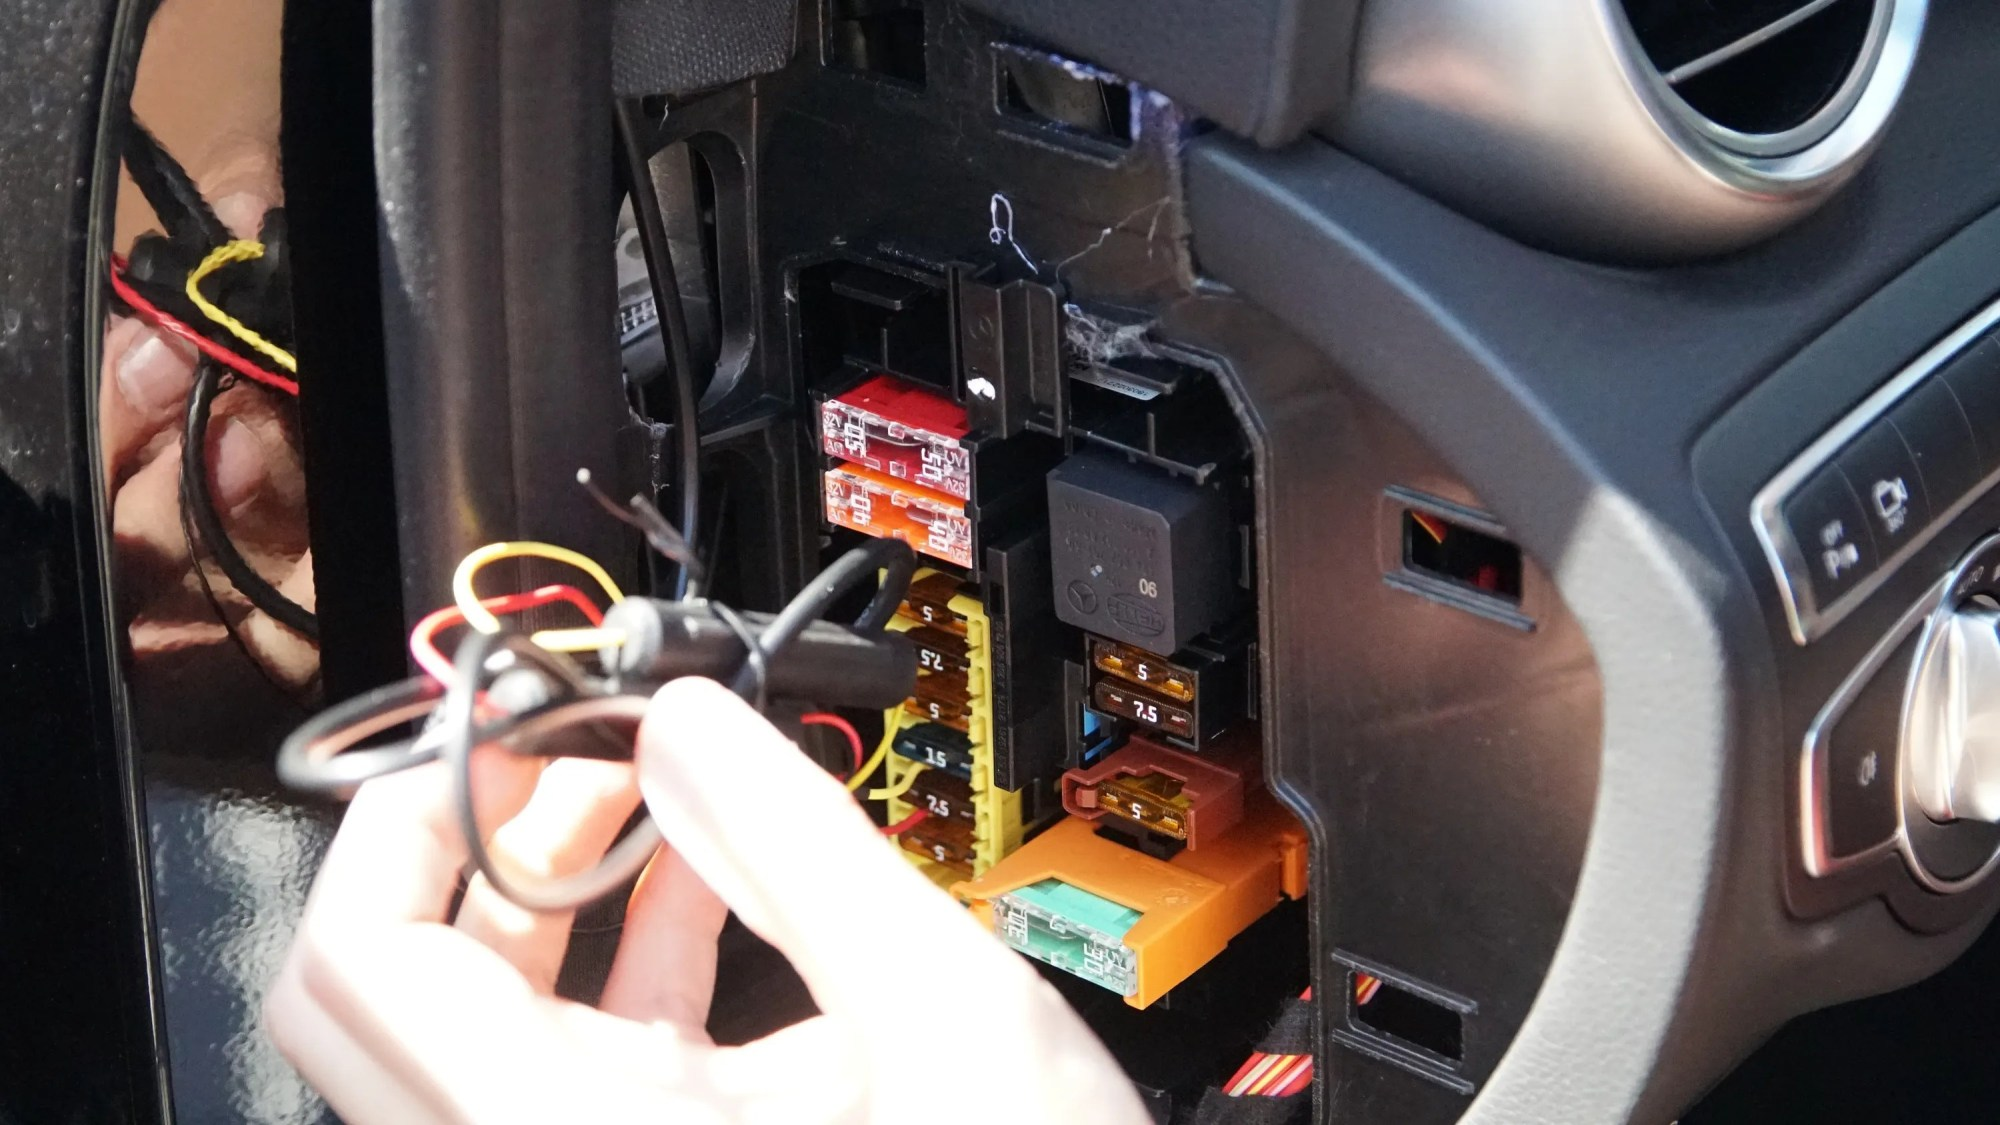 hight resolution of use a circuit tester or equivalent included in our essential install package to test which fuse is constant and which is ignition switched